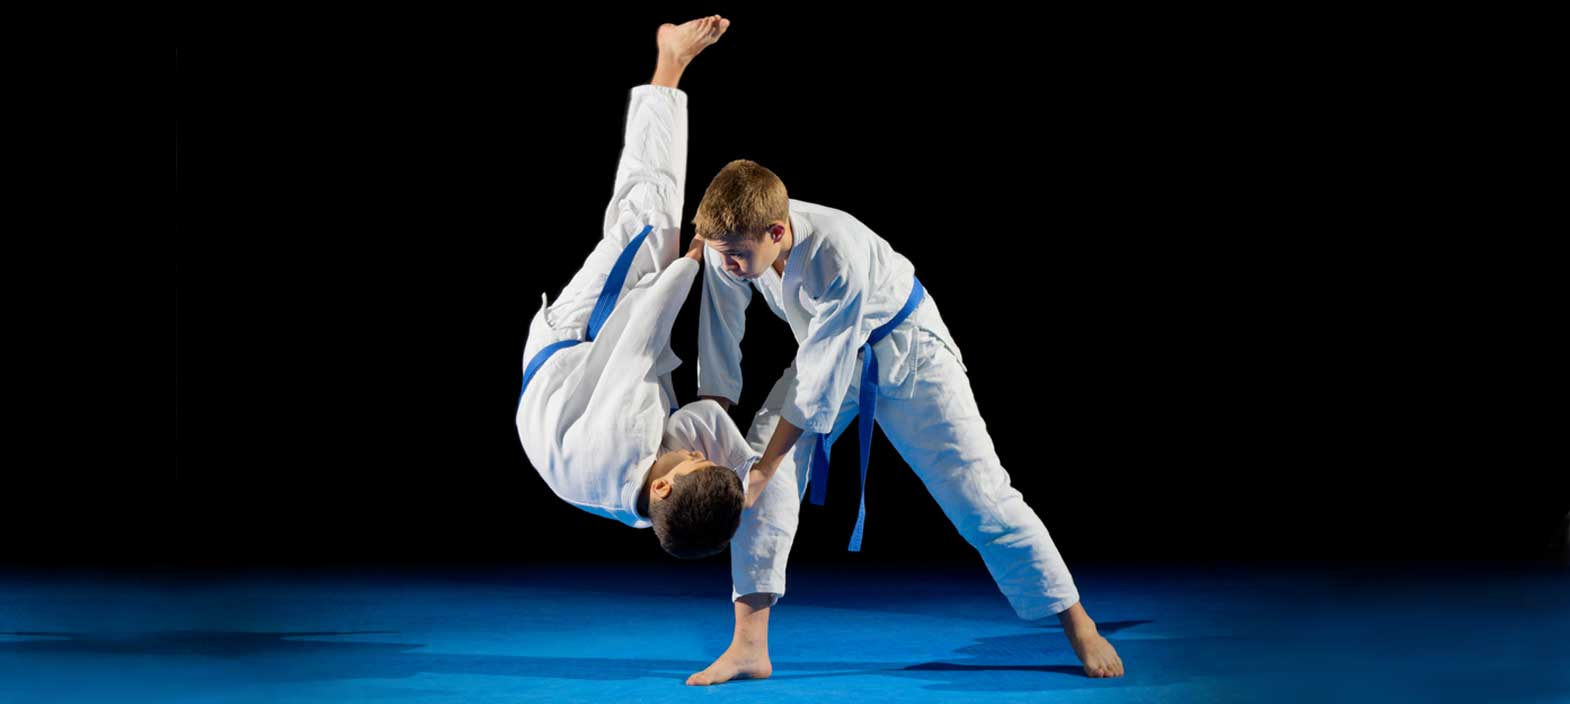 By GMR Martial Arts Place - Martial Arts, Karate, Judo, Aikido, Jujitsu, Hap